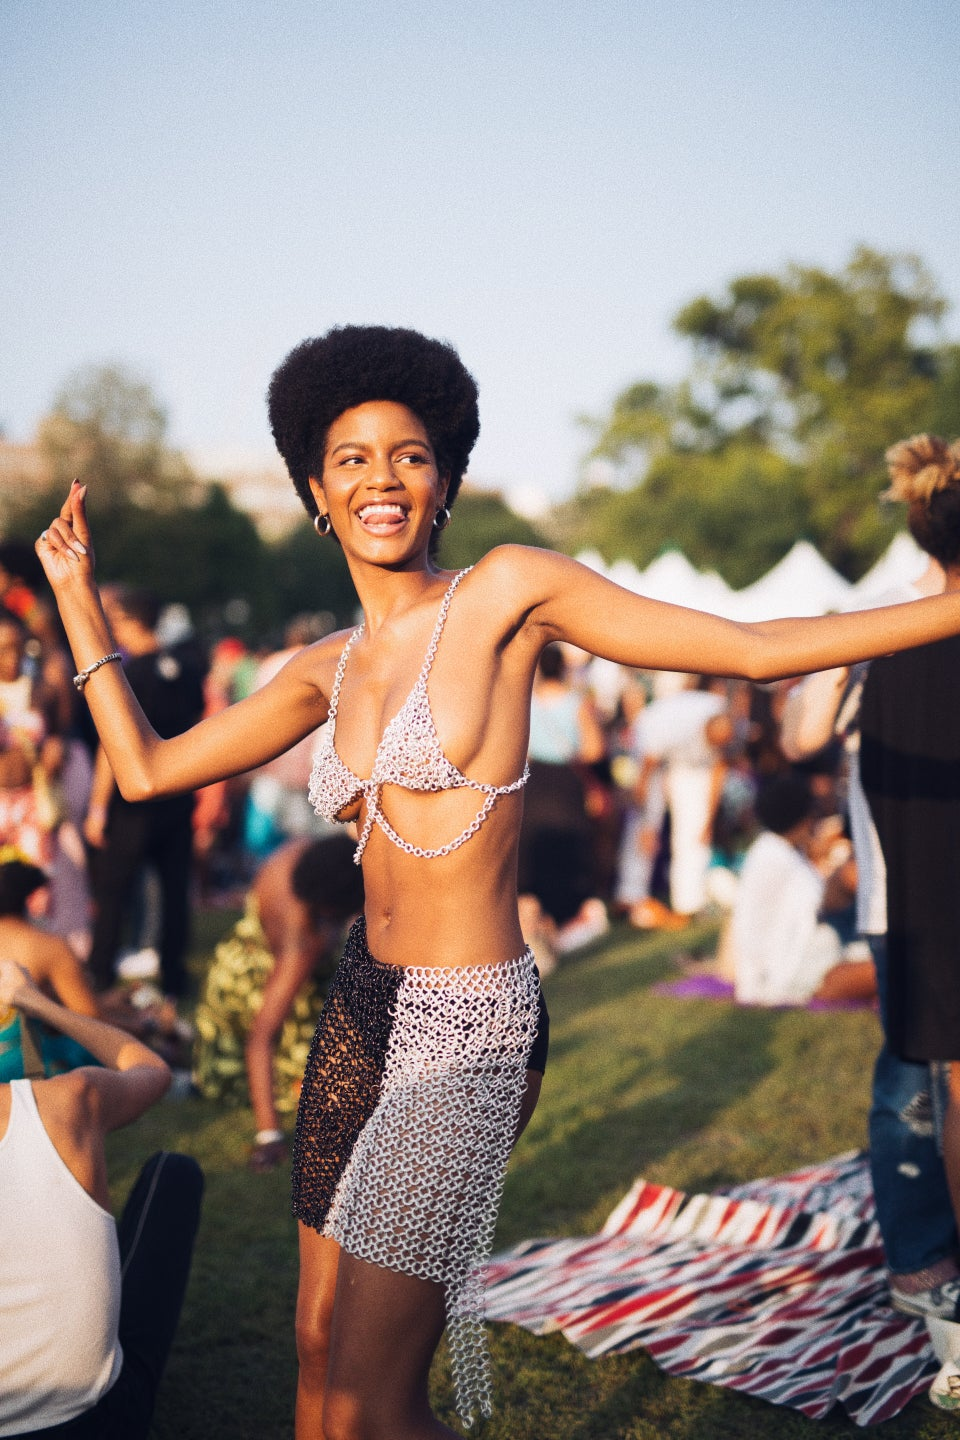 Model Ebonee Davis On AfroPunk, Identity AndThe Importance Of Creating Spaces To Celebrate Our Blackness